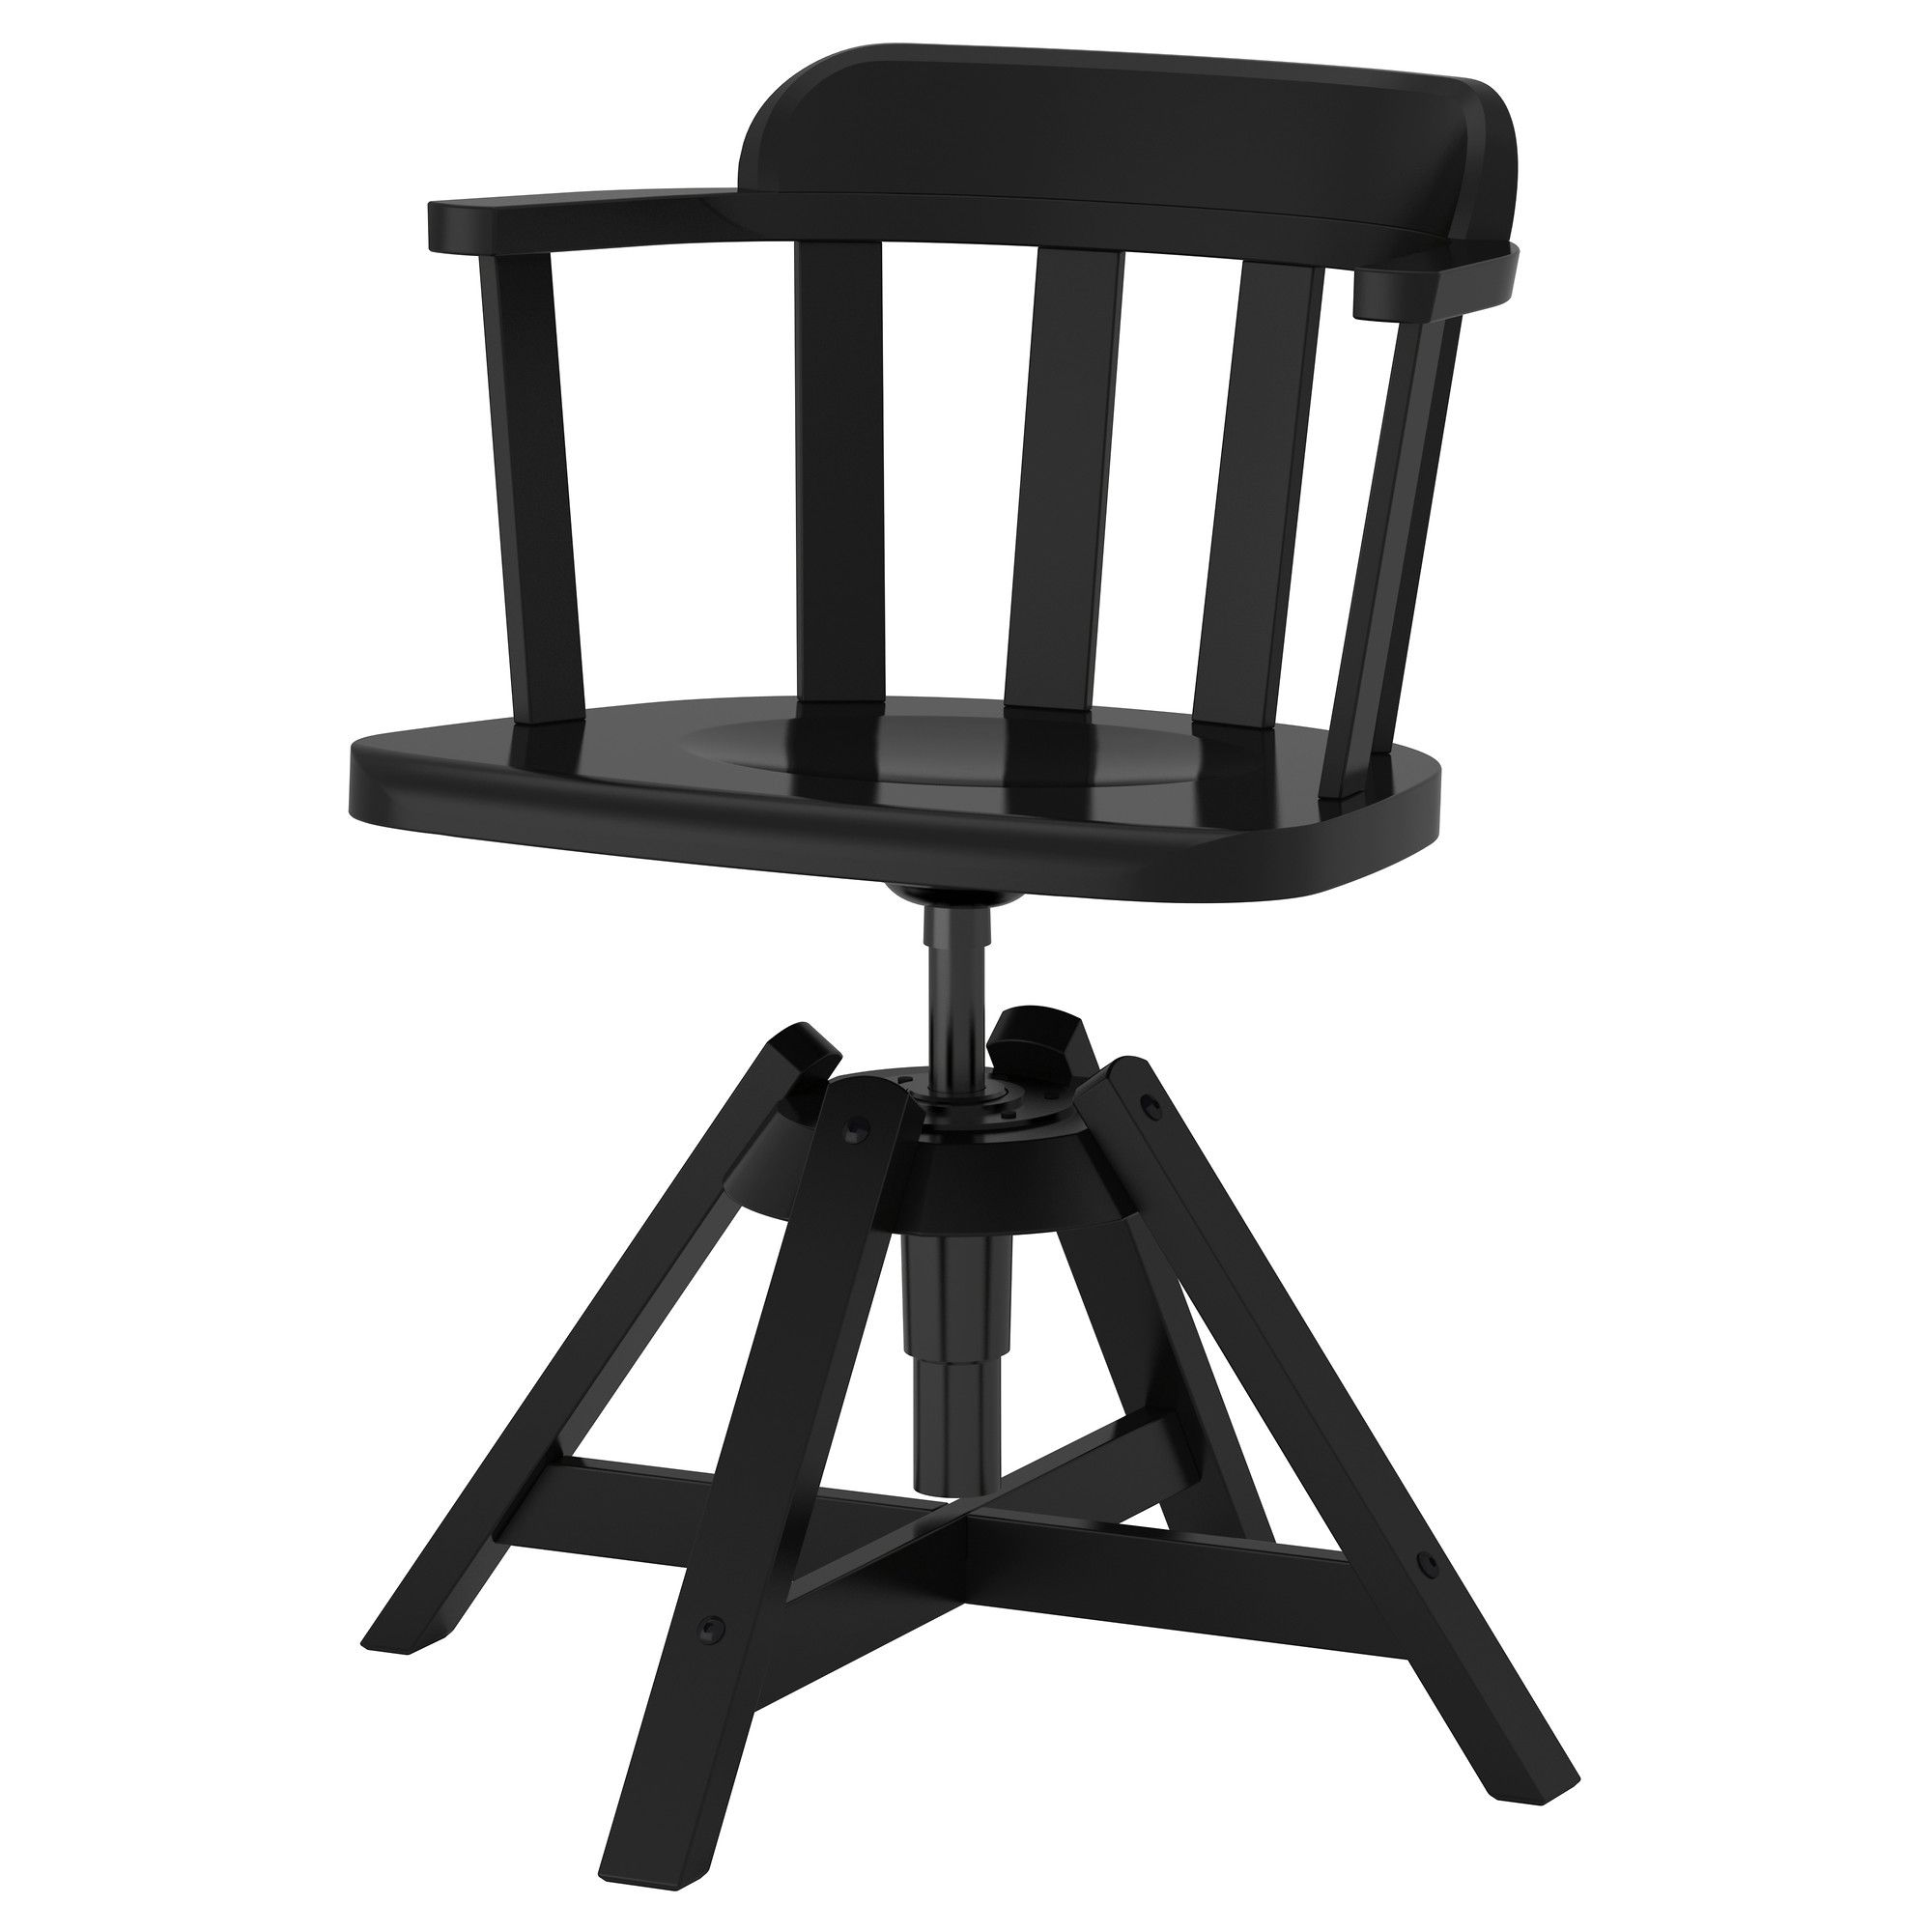 Feodor swivel chair with armrests black from ikea with